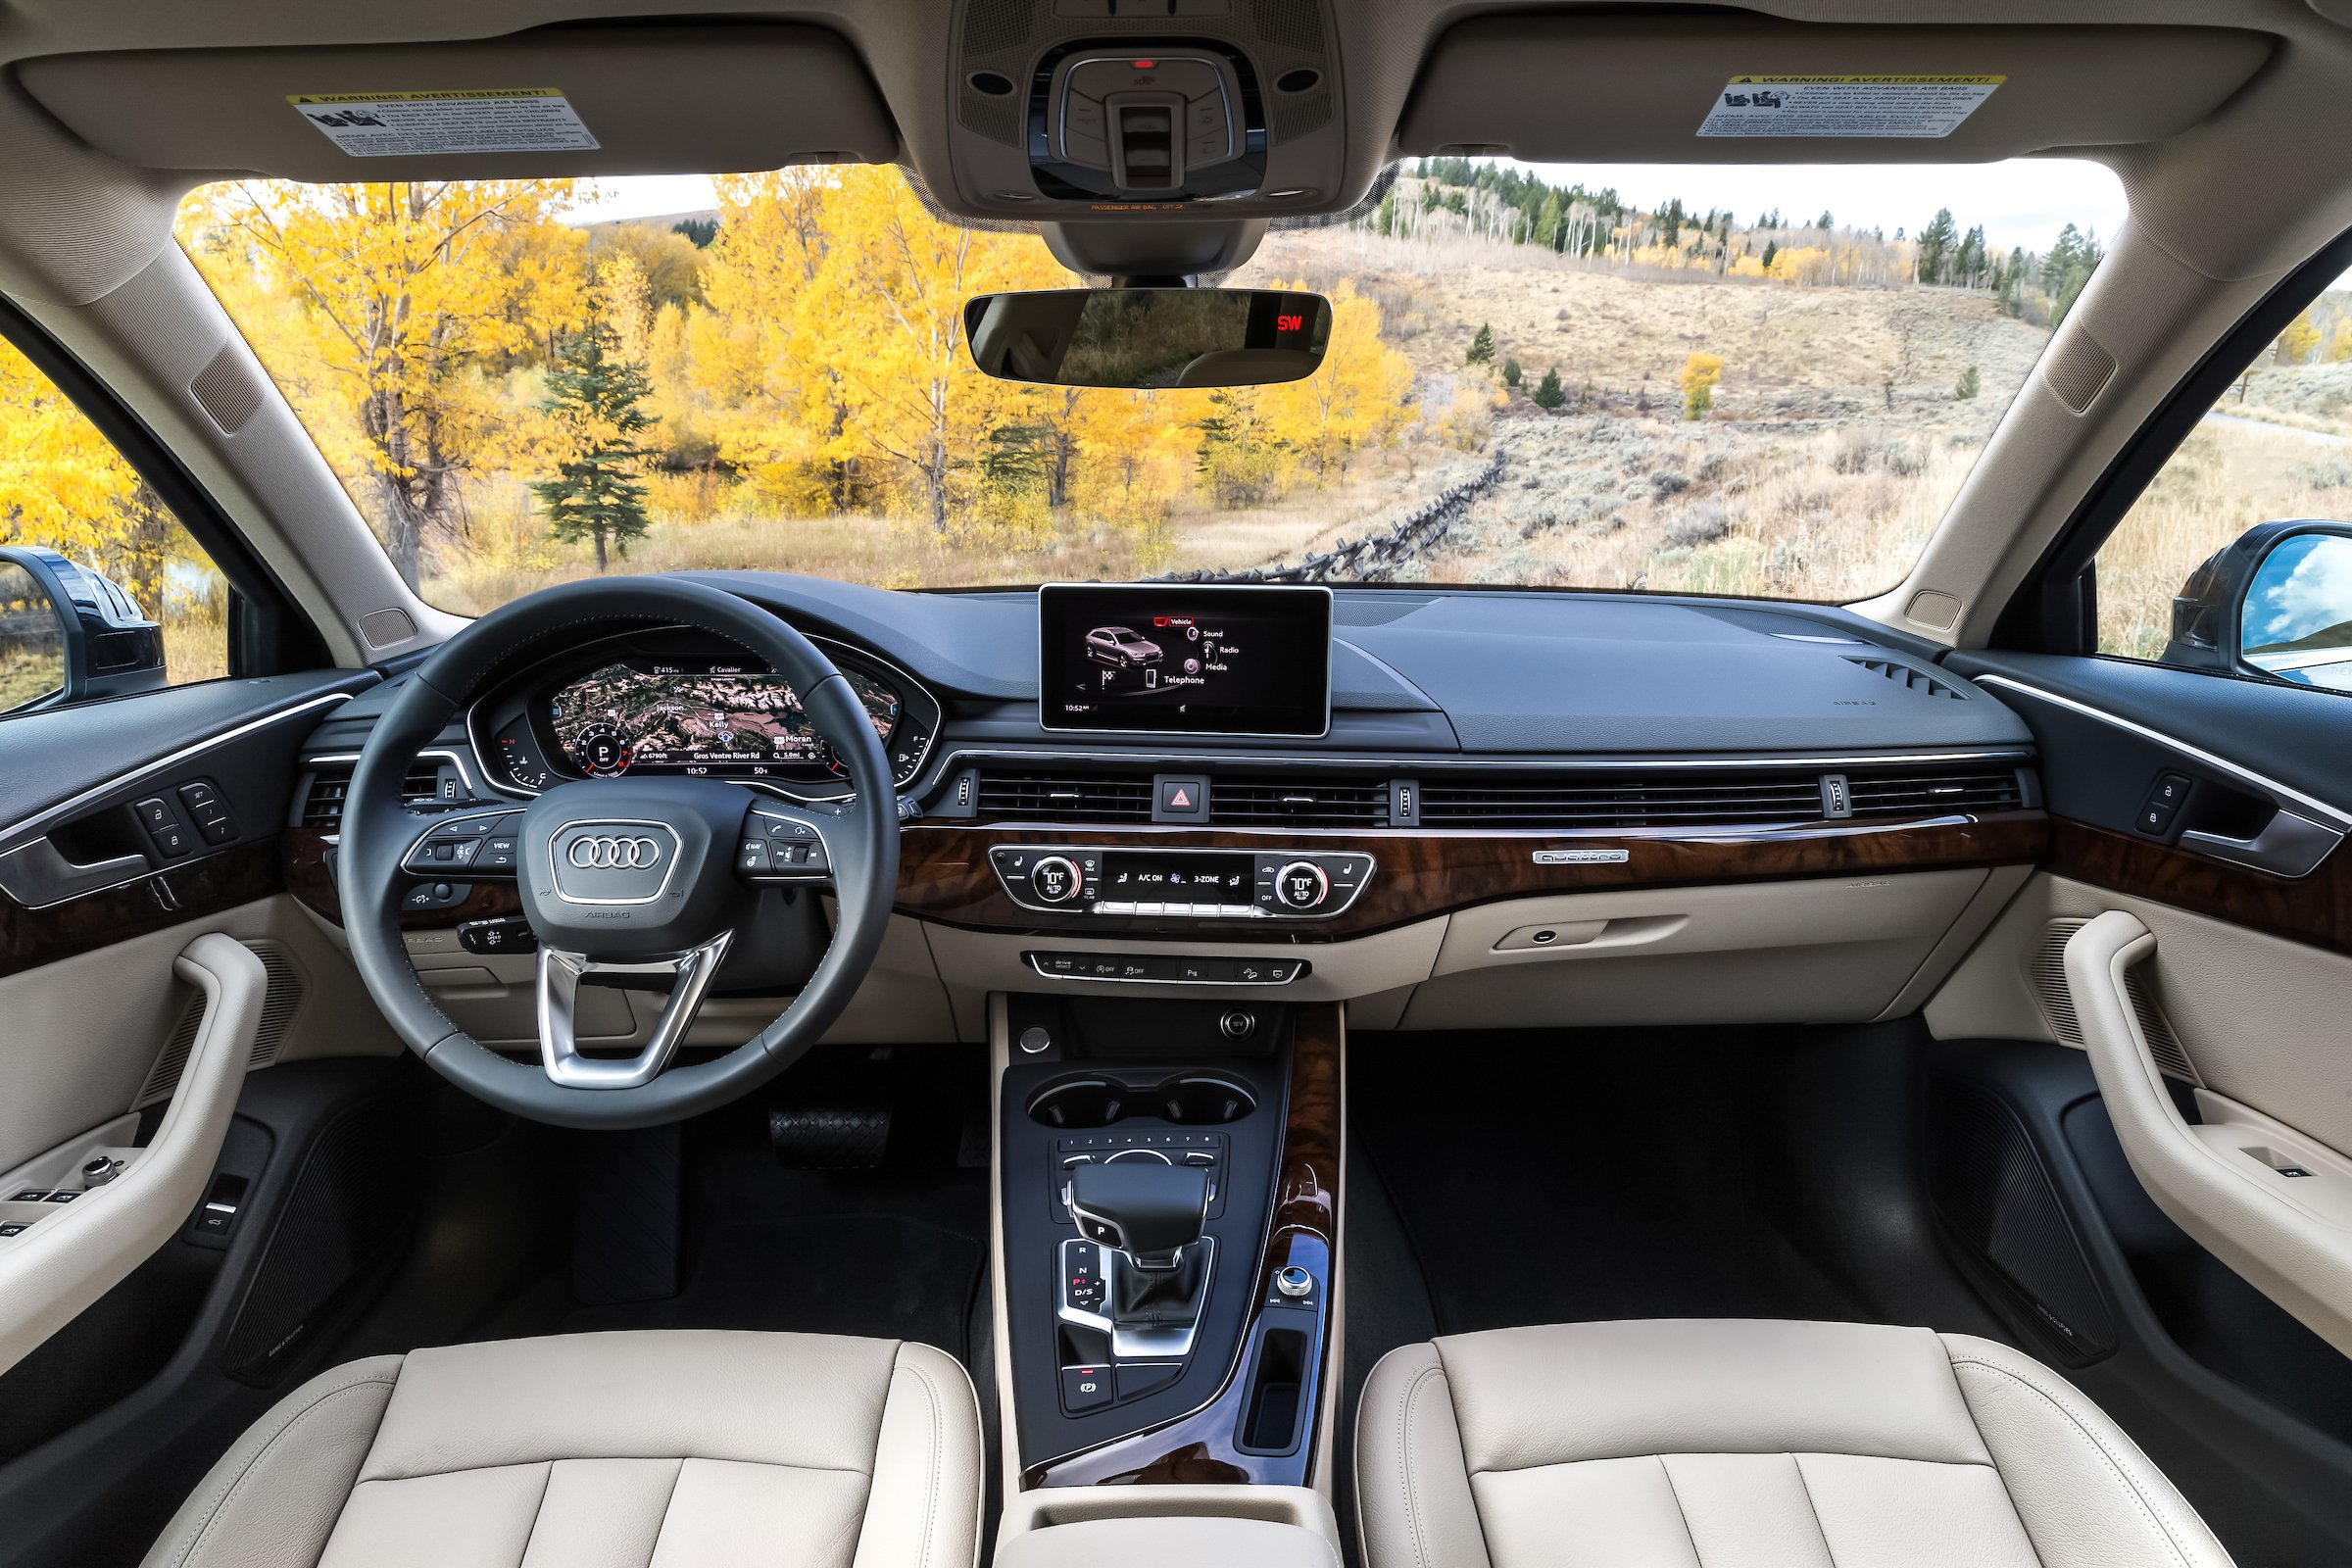 The Audi Allroad Has One Surprising New Feature For Tech Crowd Venturebeat